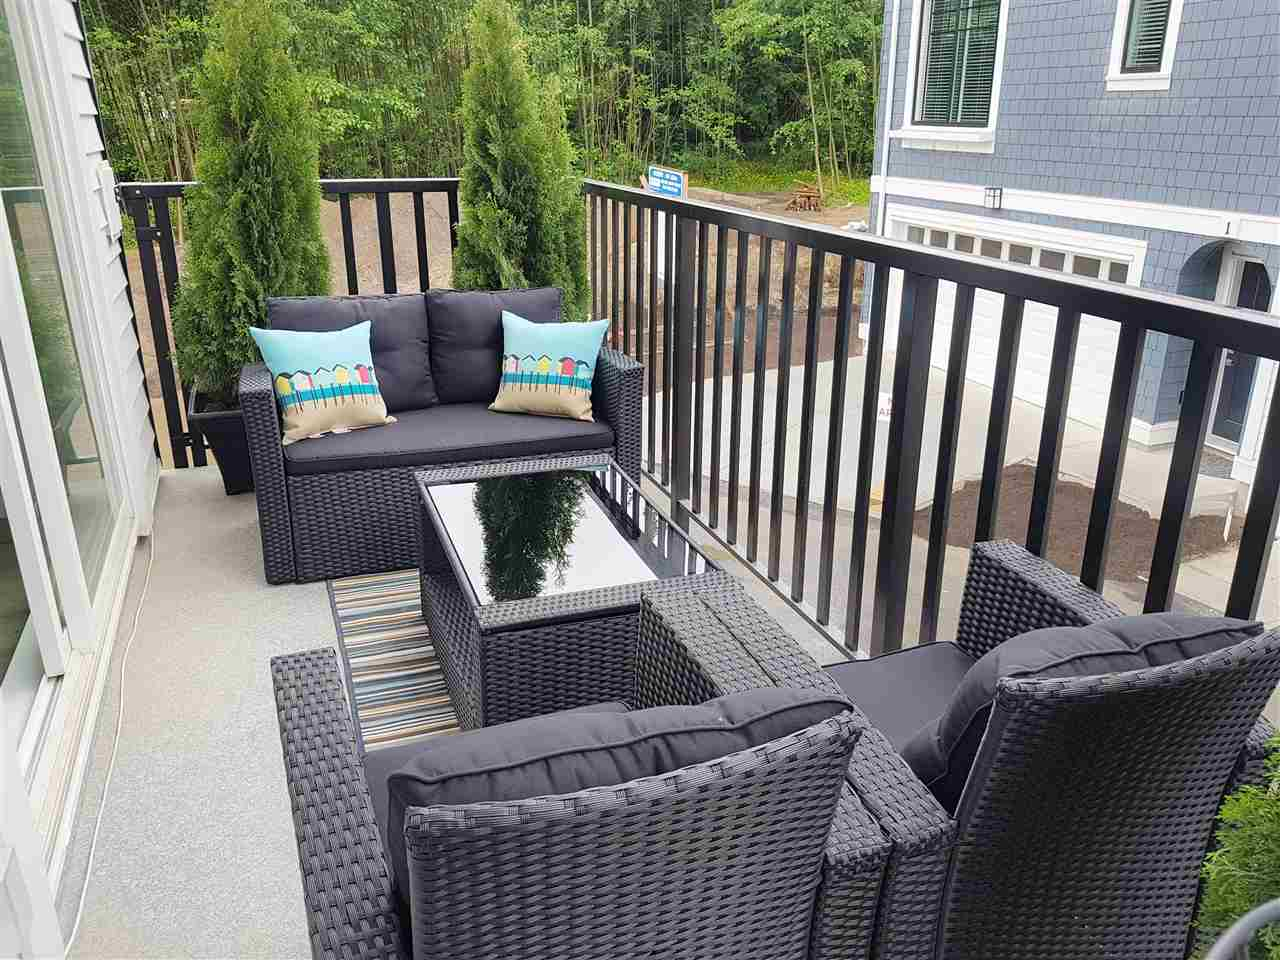 For Sale: 15 - 19299 64 Avenue, Surrey, BC   3 Bed, 3 Bath Townhouse for $604,900. See 17 photos!